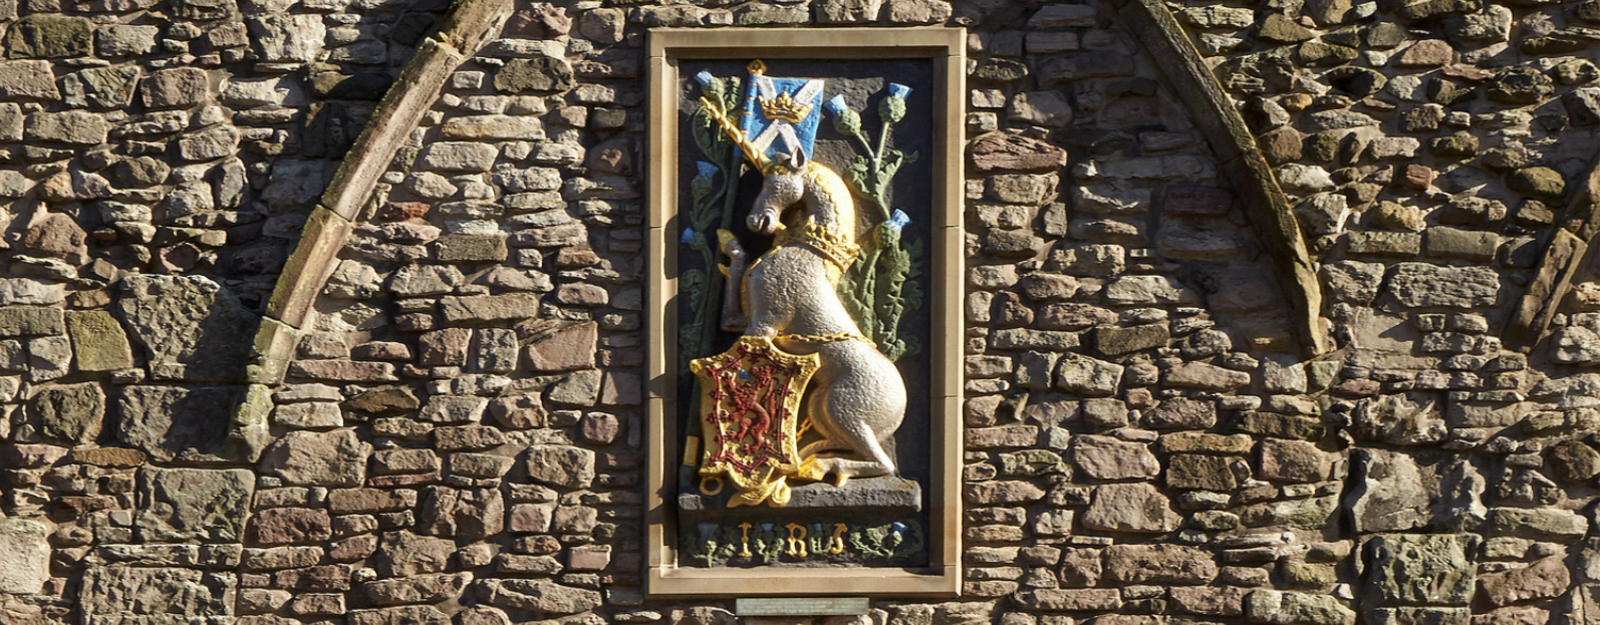 Painted unicorn on a building at the Palace of Holyroodhouse